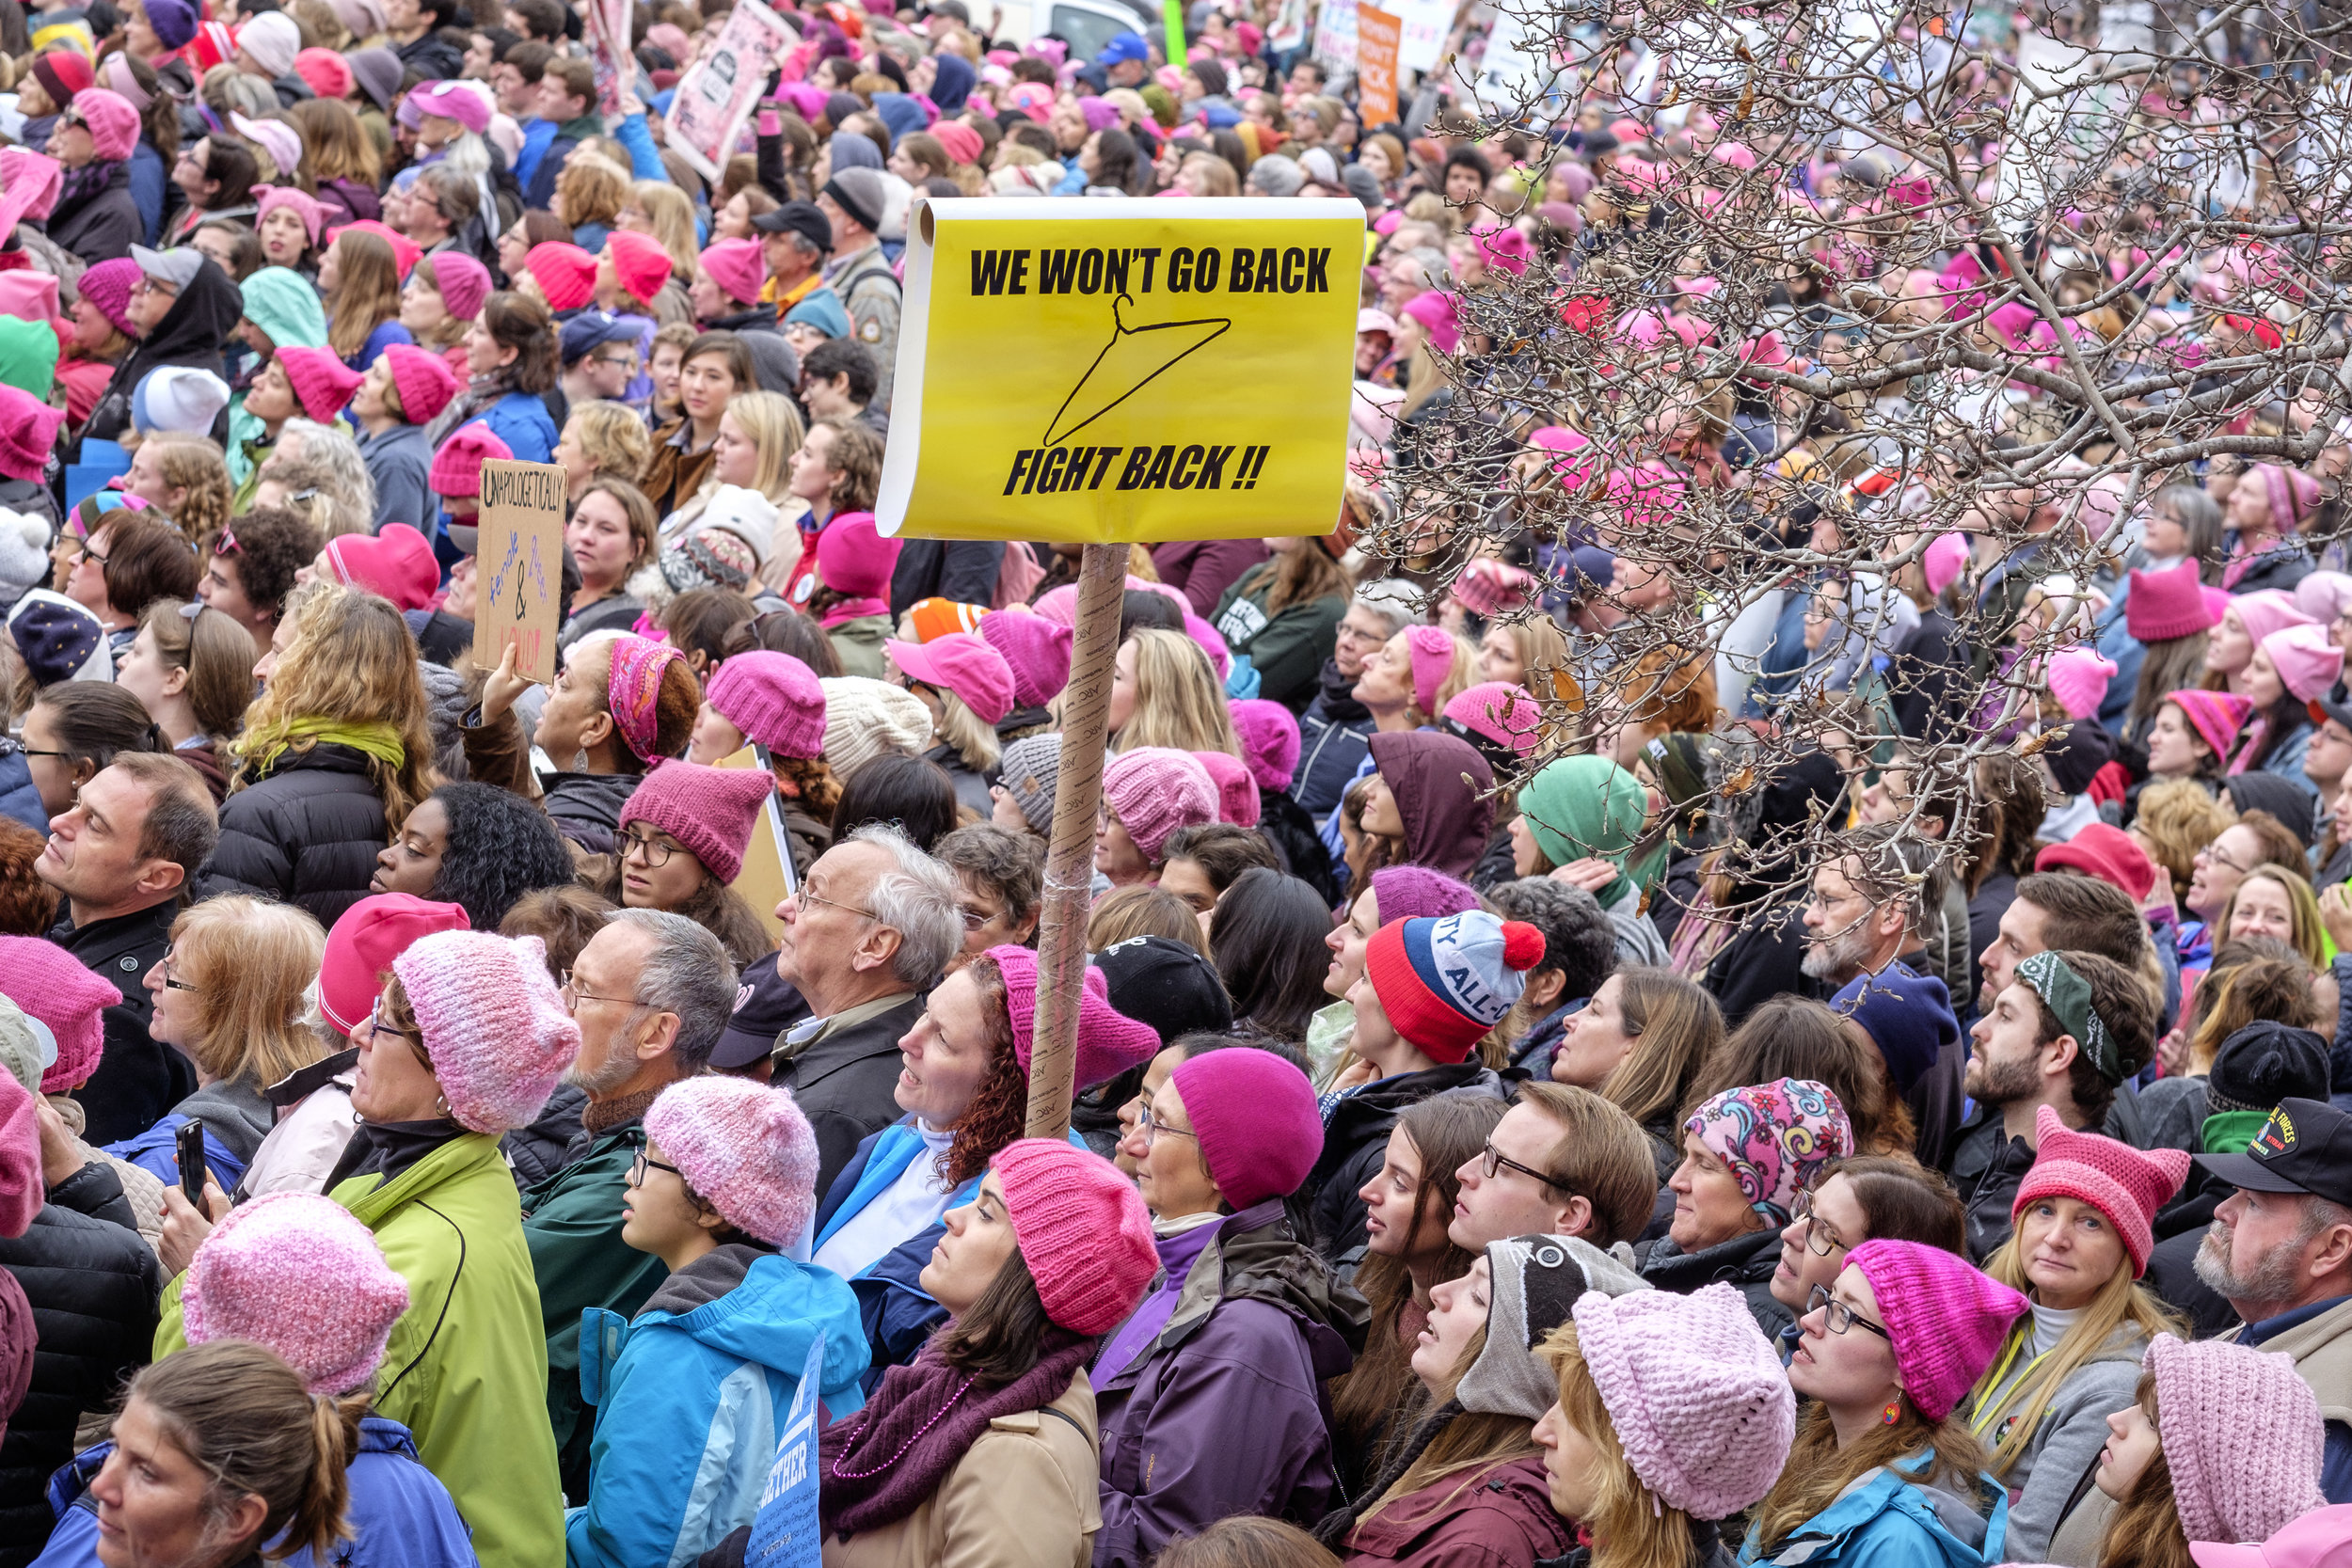 "A vast crowd is seen at The Women's March in Washington, DC on Saturday, January 21, 2017. The day after Donald Trump's inauguration as 45th U.S. president it is estimated that at least 500,000 people marched in The Women's March on Washington, and 1 million people world-wide. People came together to proclaim unity and to stand firm on the principles of human rights. ""Women's Rights are Human Rights and Human Rights are Women's Rights."""